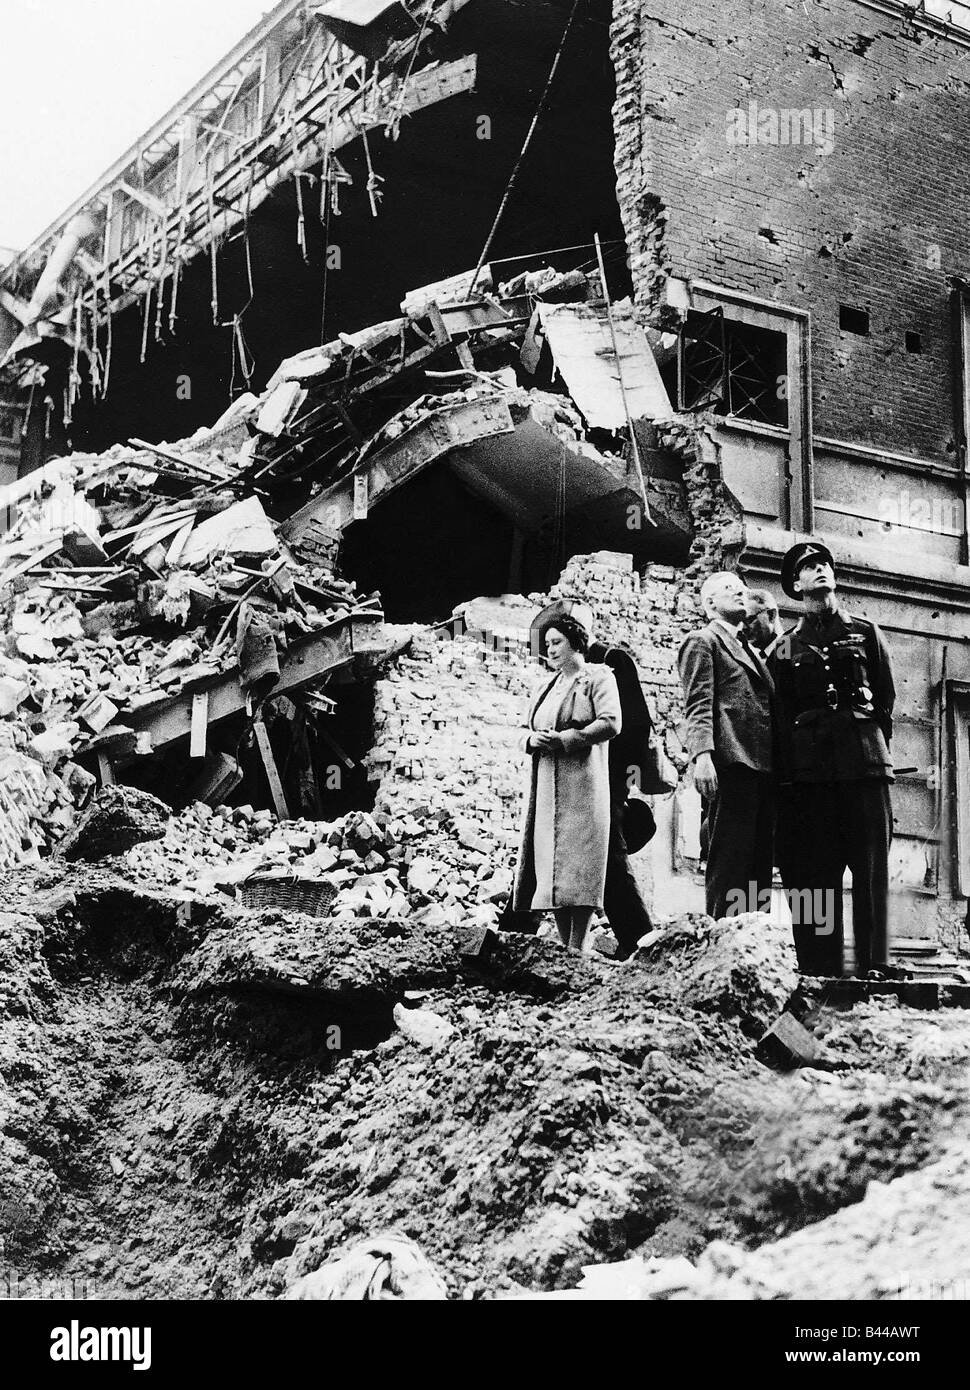 Queen Elizabeth and King George VI tour WW2 bomb sites during the Blitz of London - Stock Image